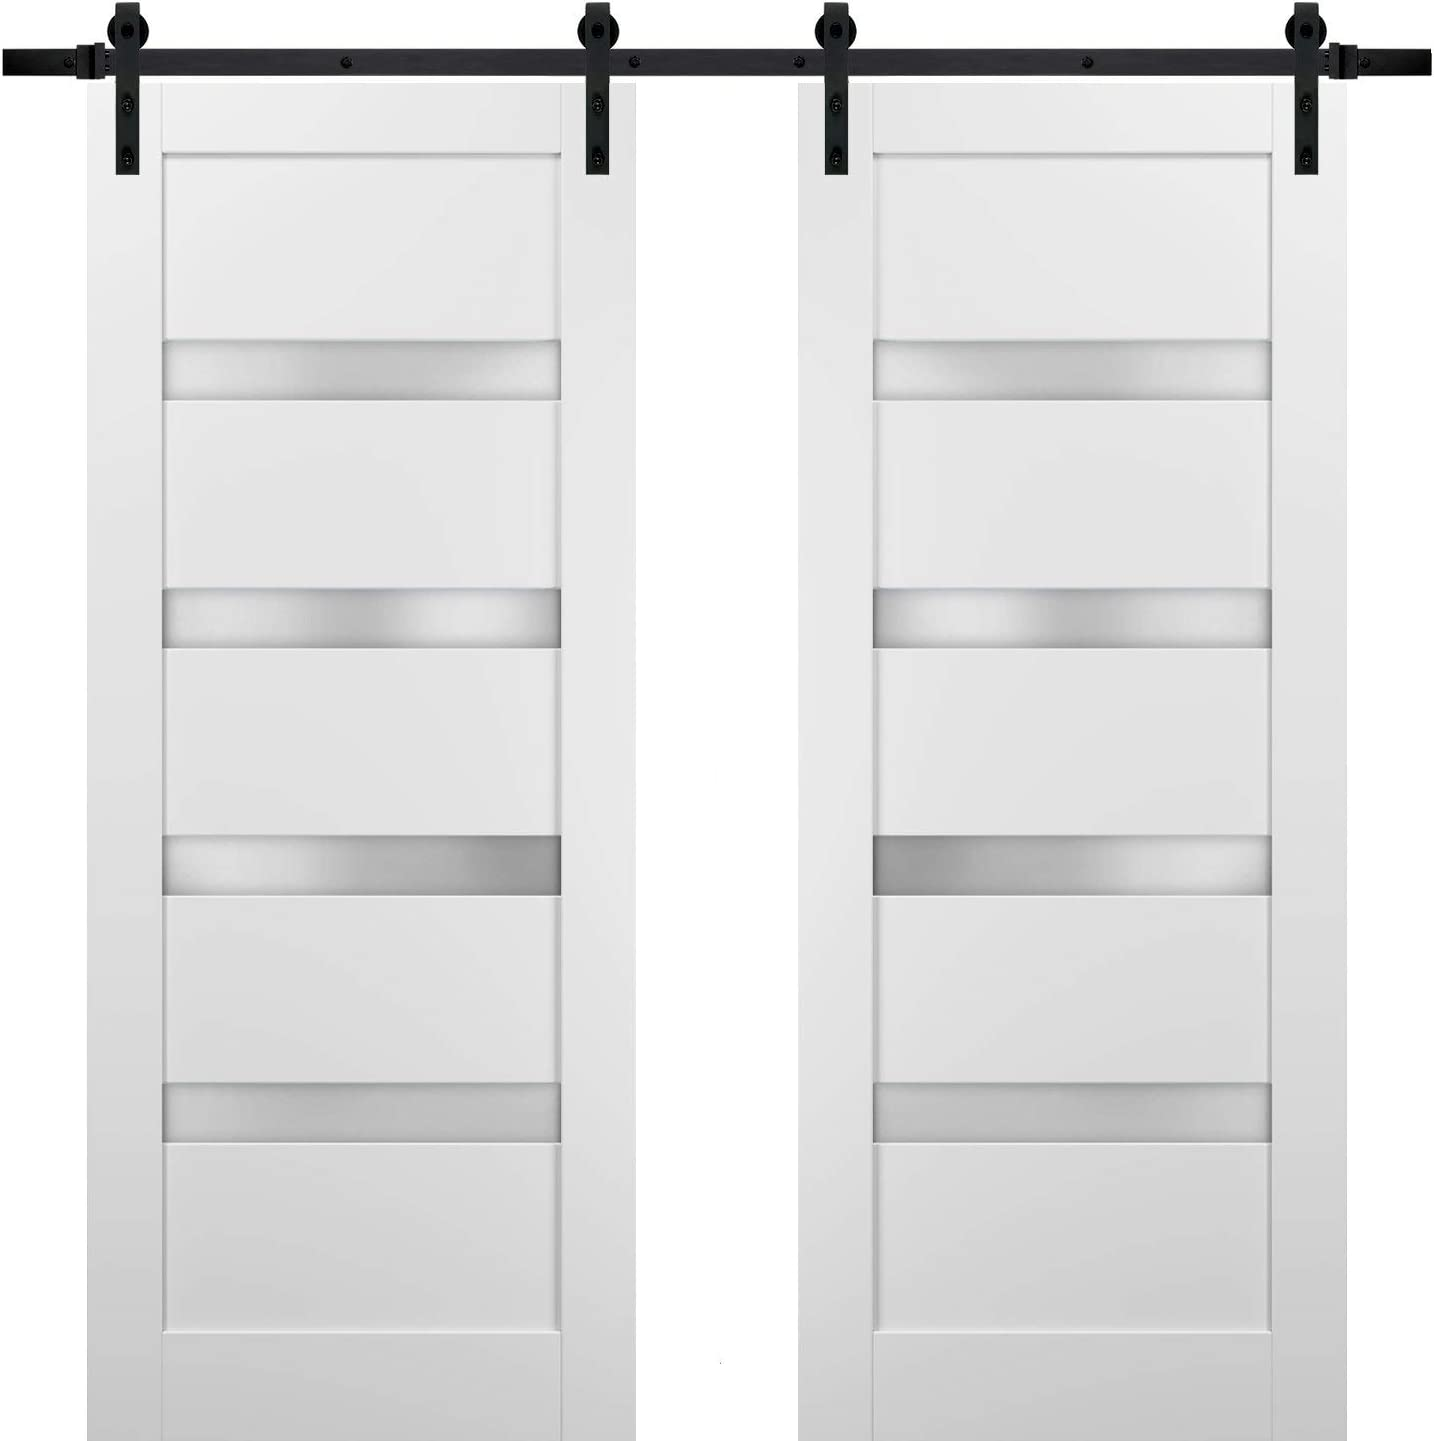 Sliding Double Barn Doors 60 X 96 With Hardware Quadro 4113 White Silk With Frosted Opaque Glass Top Mount 13ft Rail Sturdy Set Kitchen Lite Wooden Solid Panel Interior Bedroom Bathroom Door Amazon Com